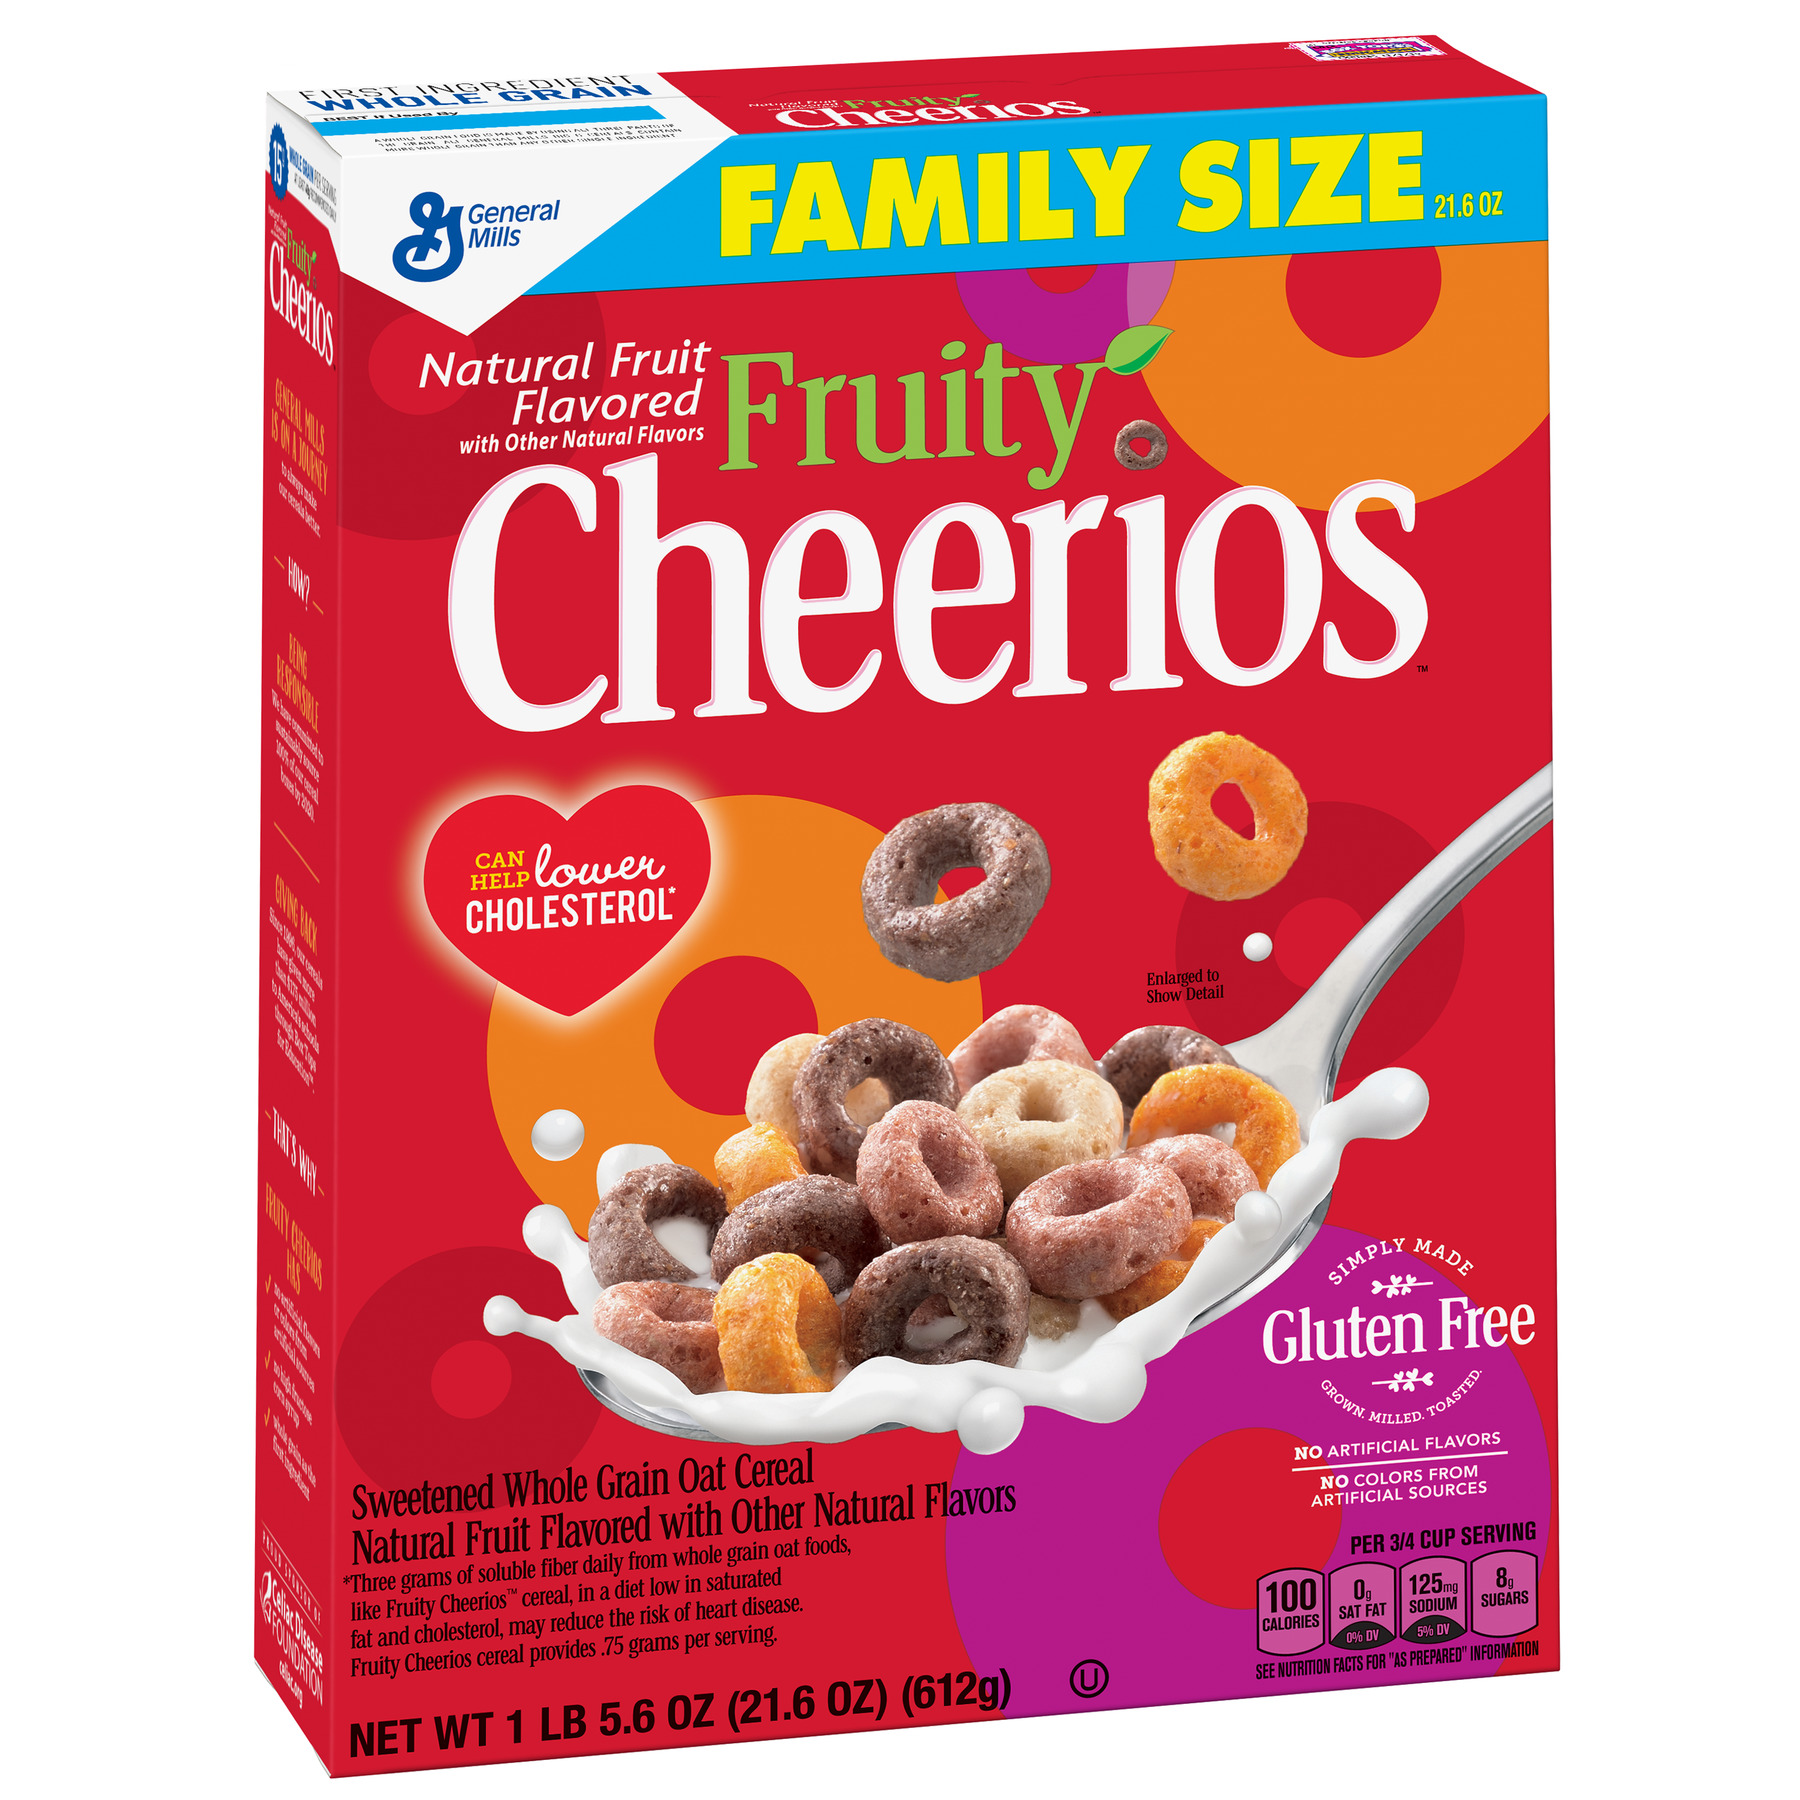 Fruity Gluten Free Cheerios, 21.6 oz